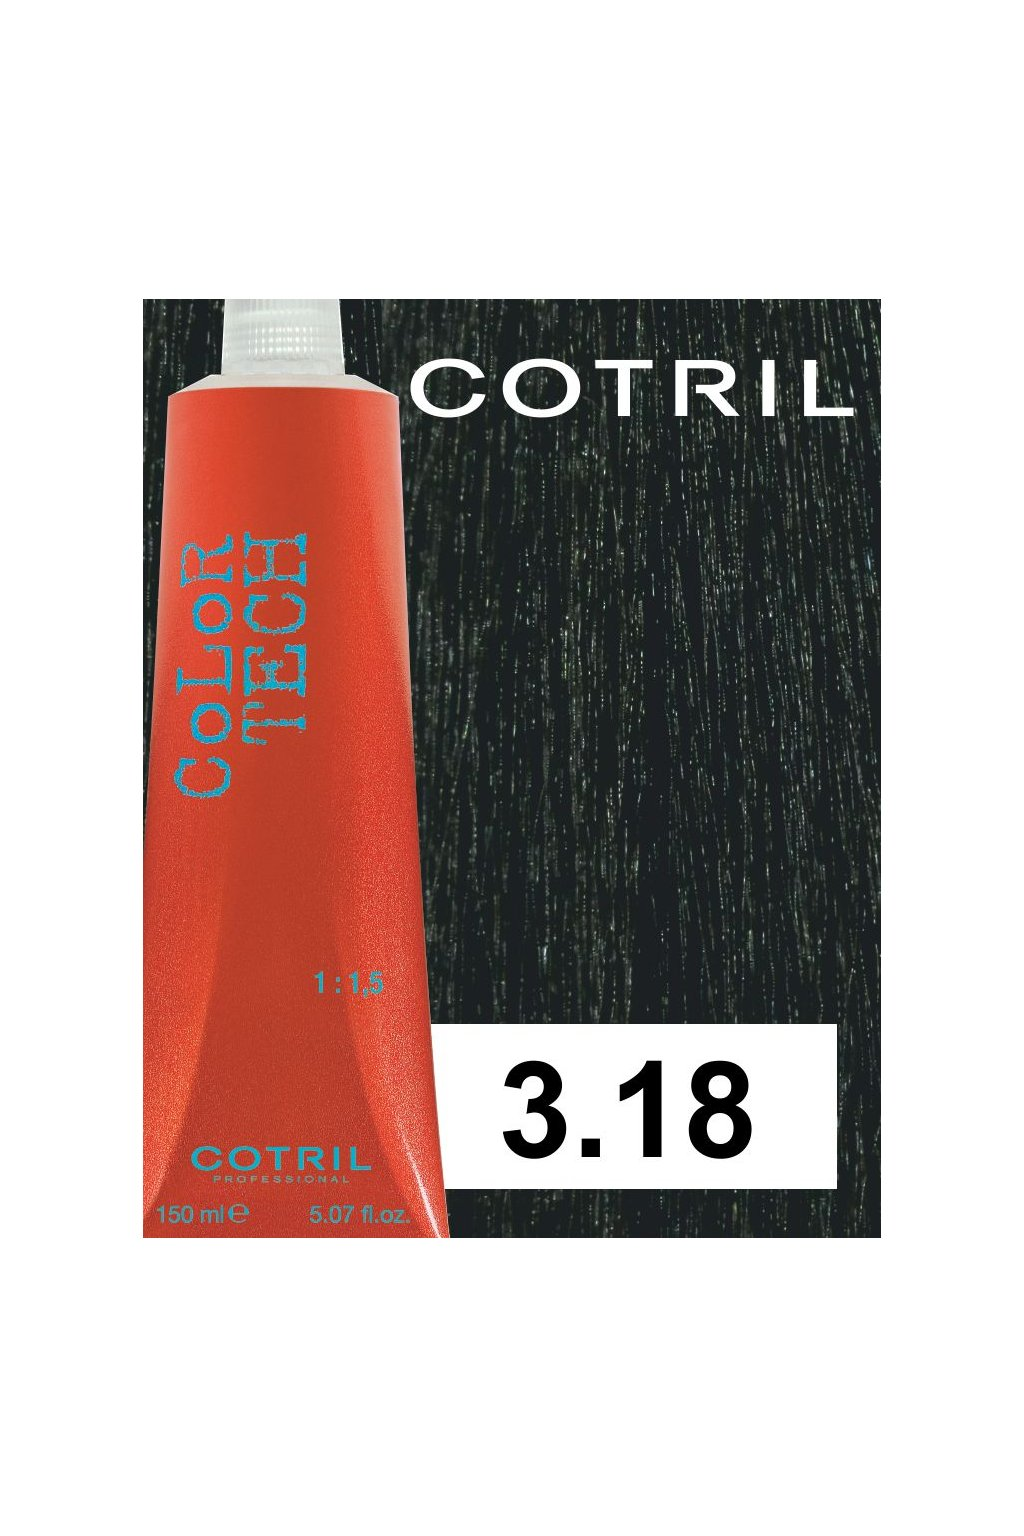 3 18 ct cotril